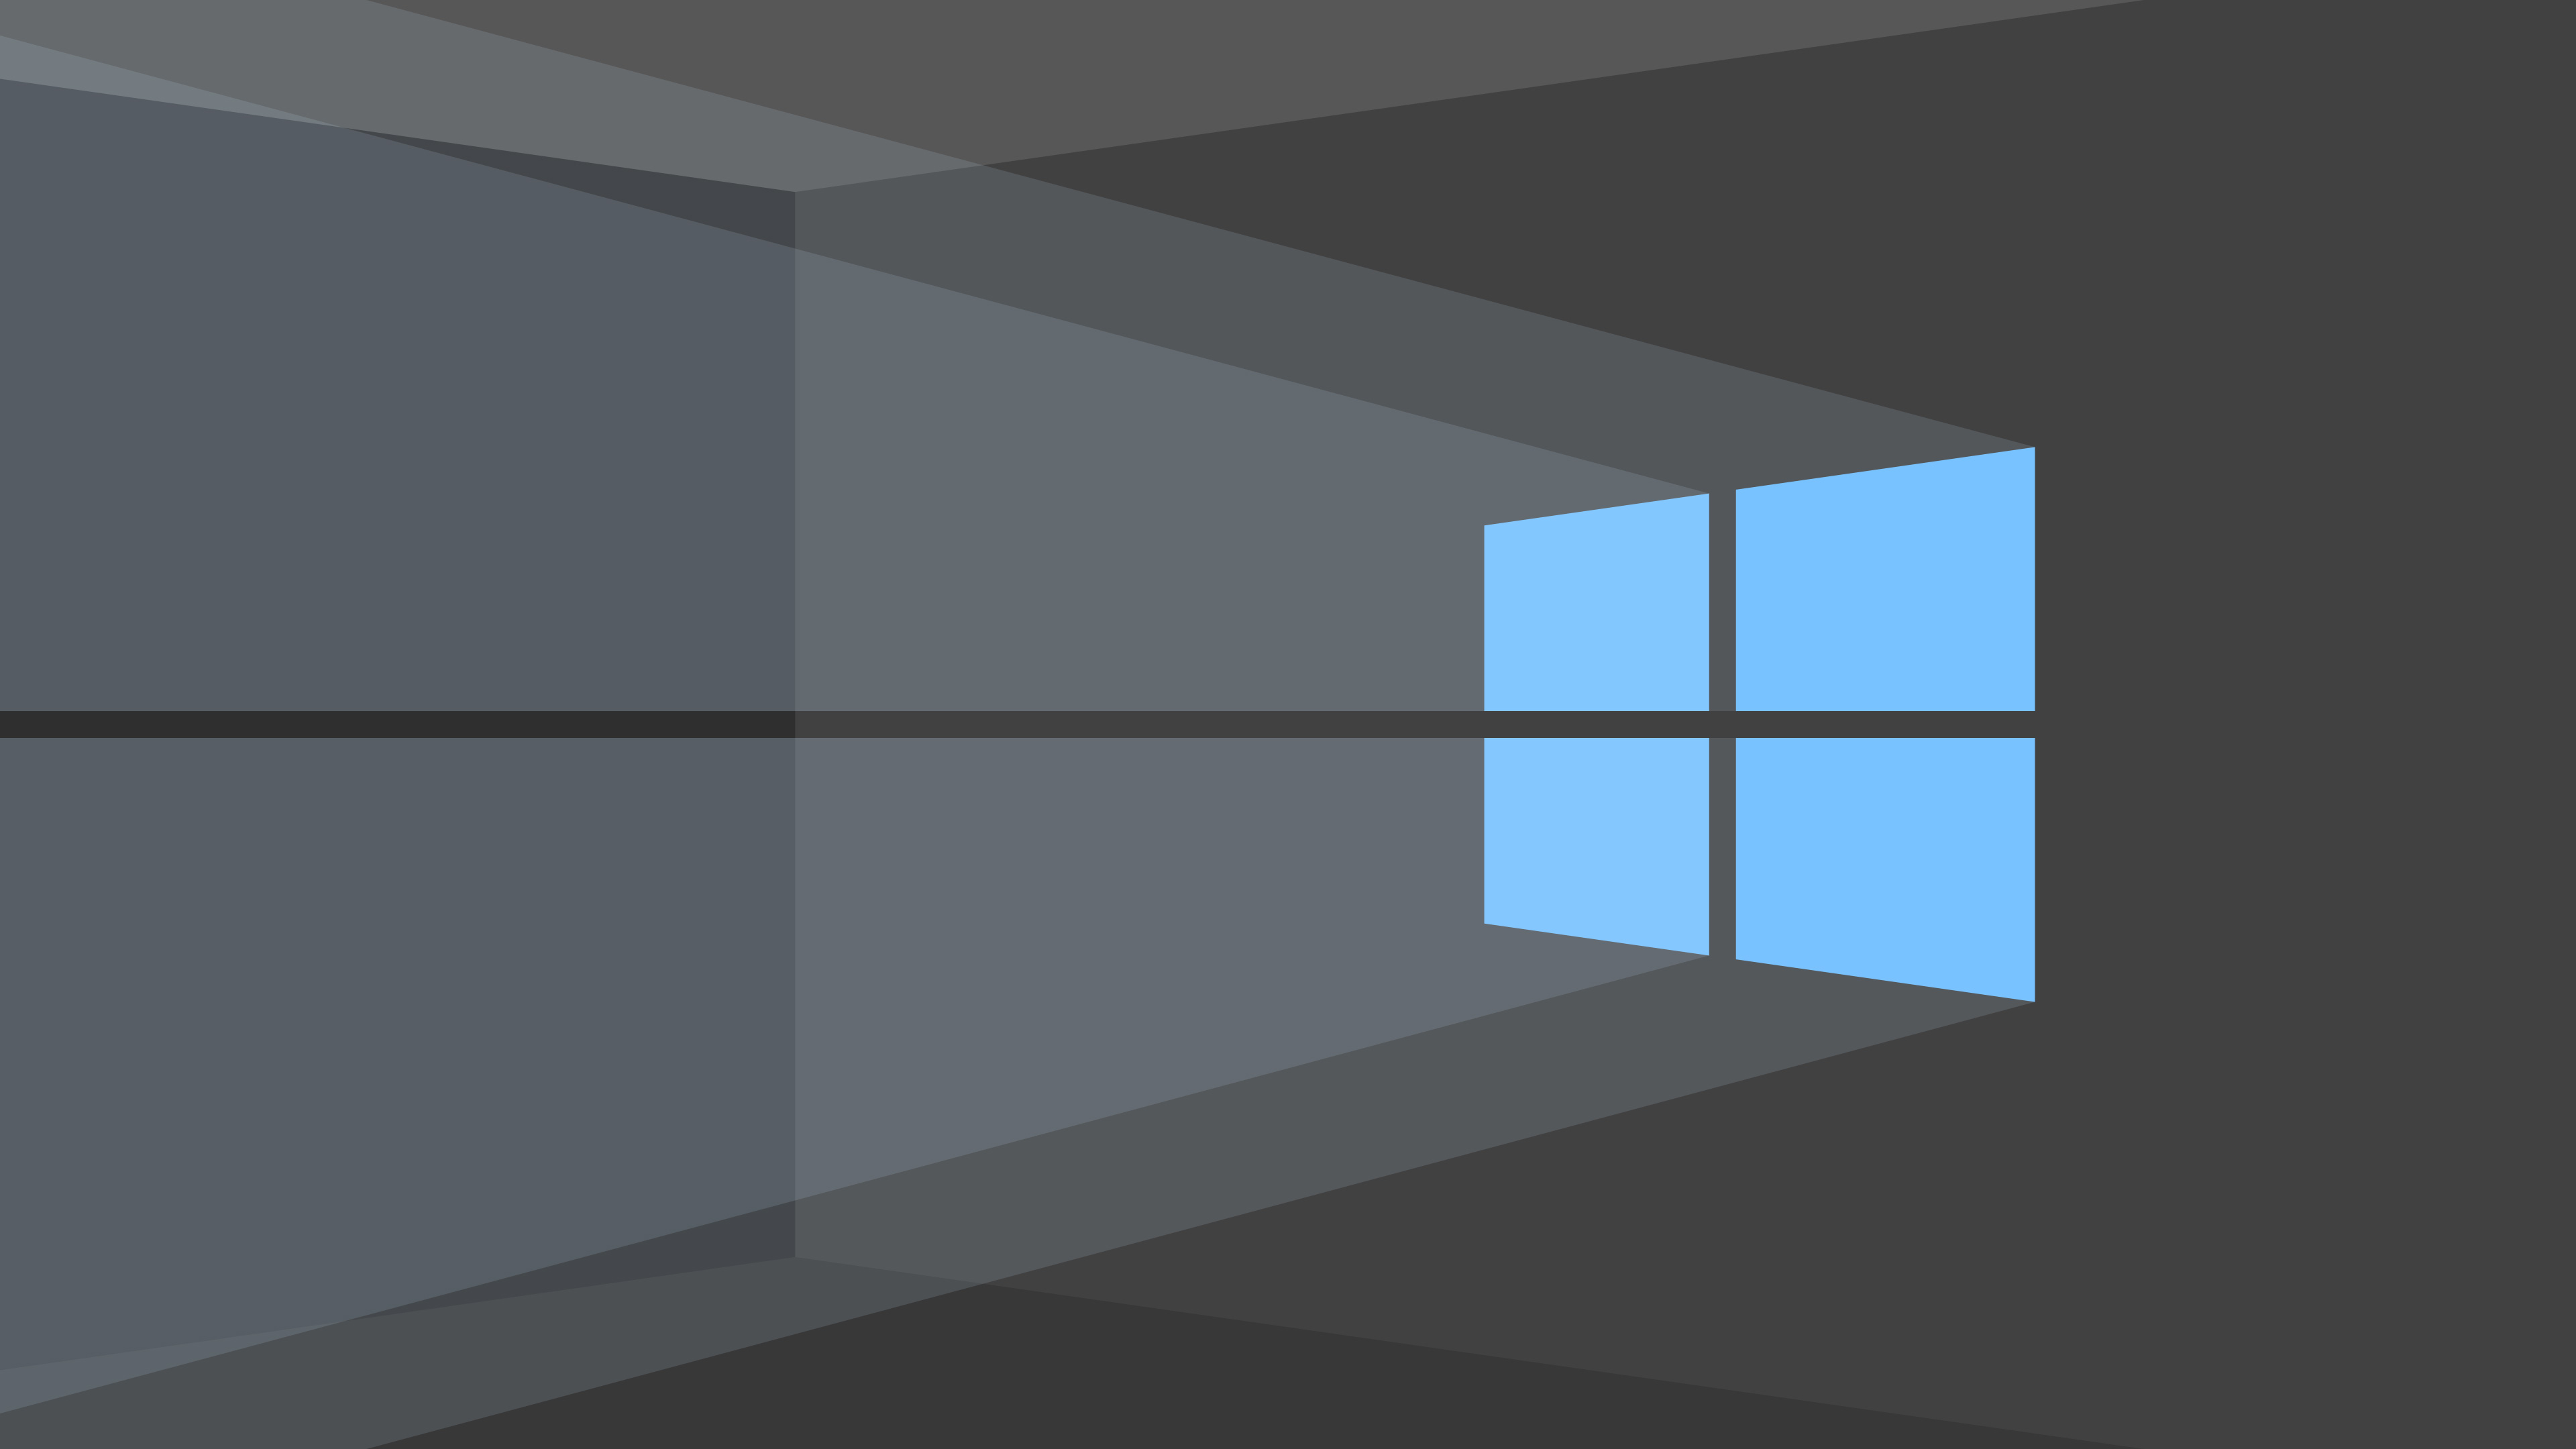 Windows 10 Minimalism 4k Hd Computer 4k Wallpapers Images Backgrounds Photos And Pictures